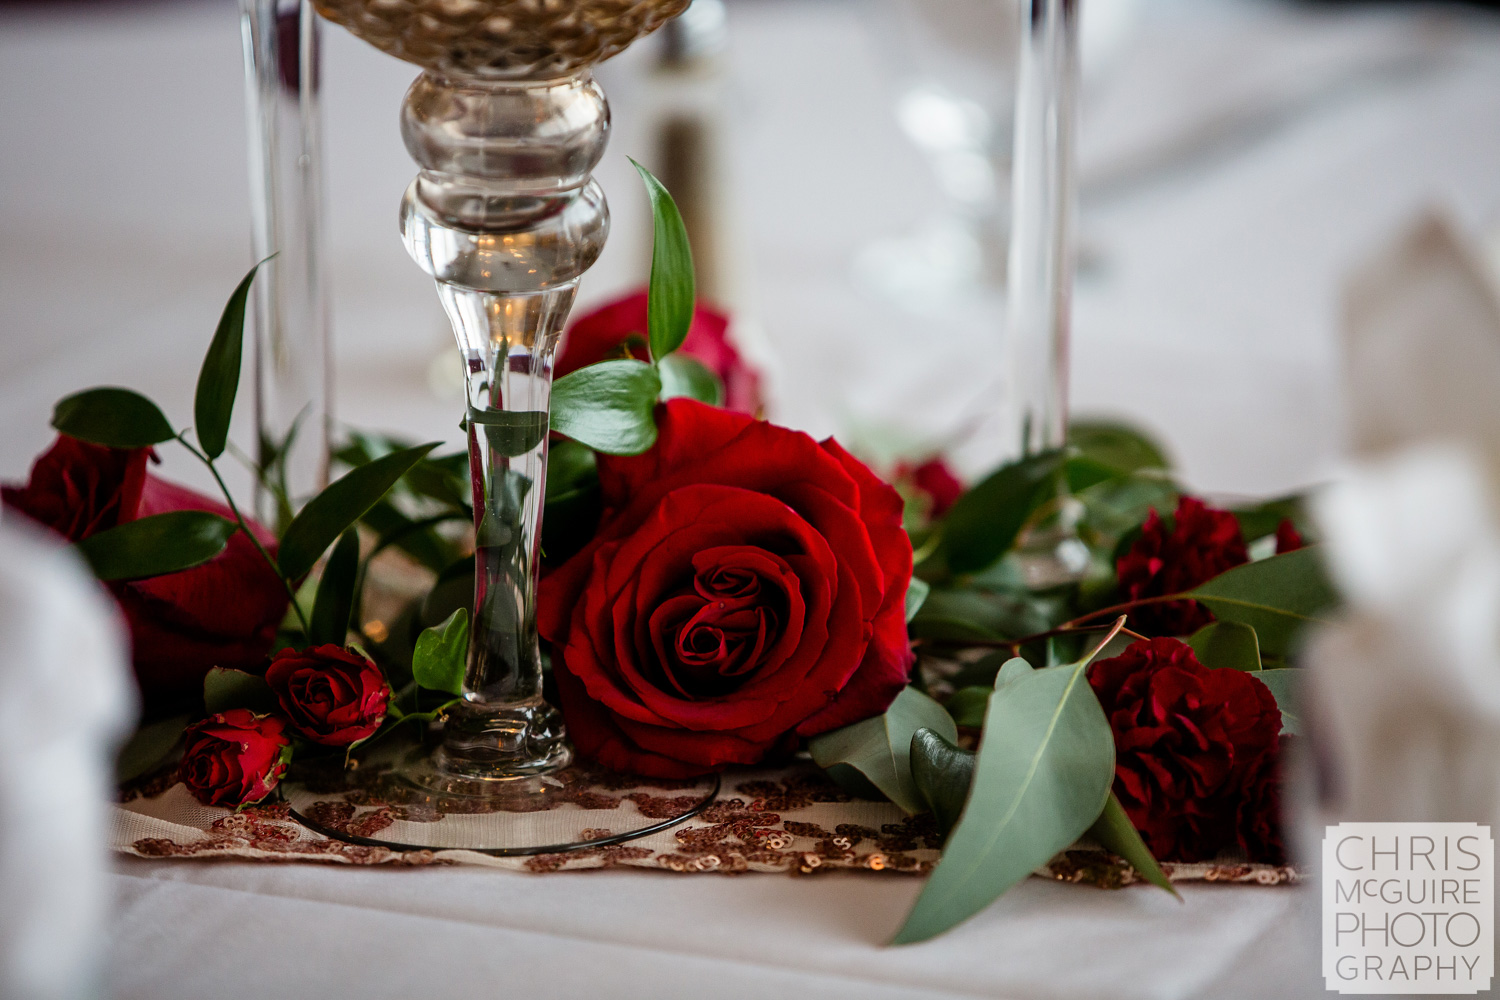 Rose on wedding reception table